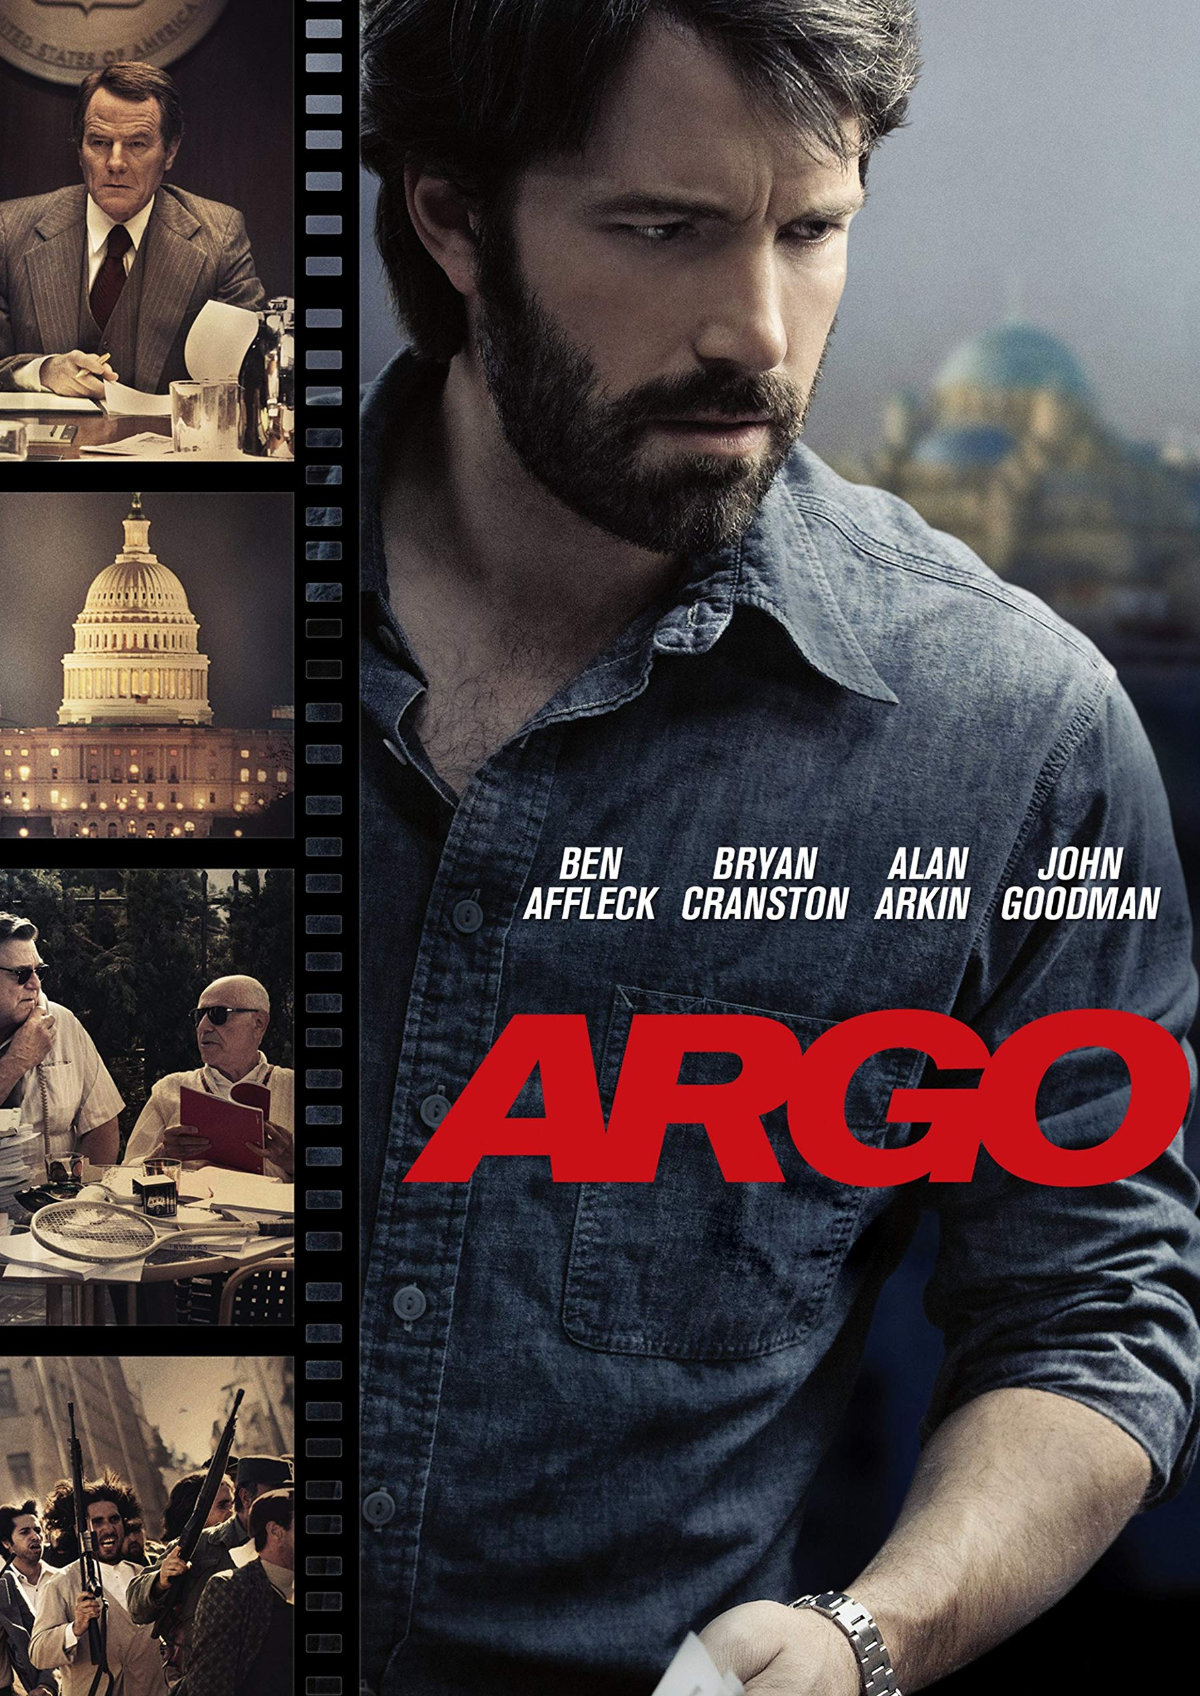 'Argo' movie poster